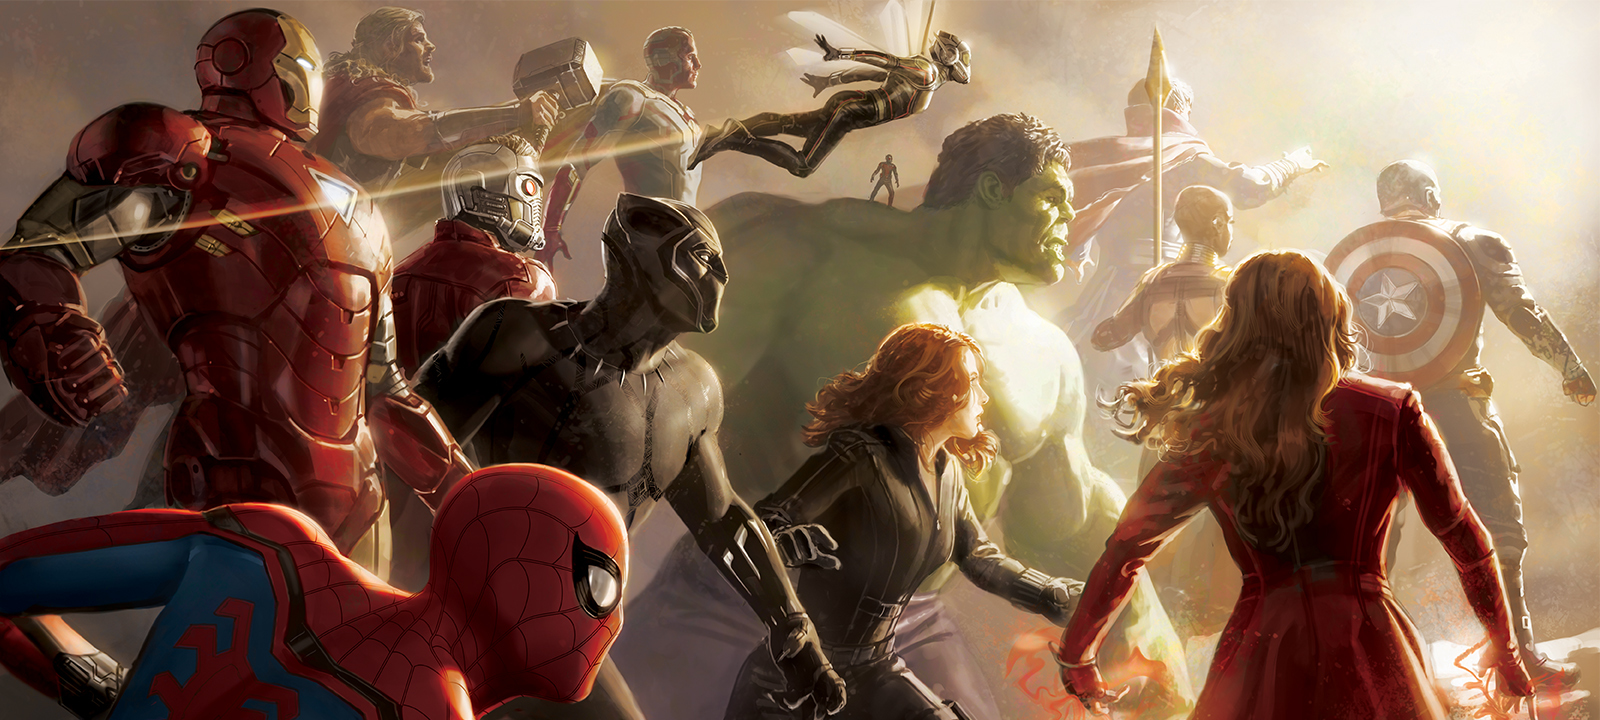 The Road to Avengers: Endgame with Marvel Studios